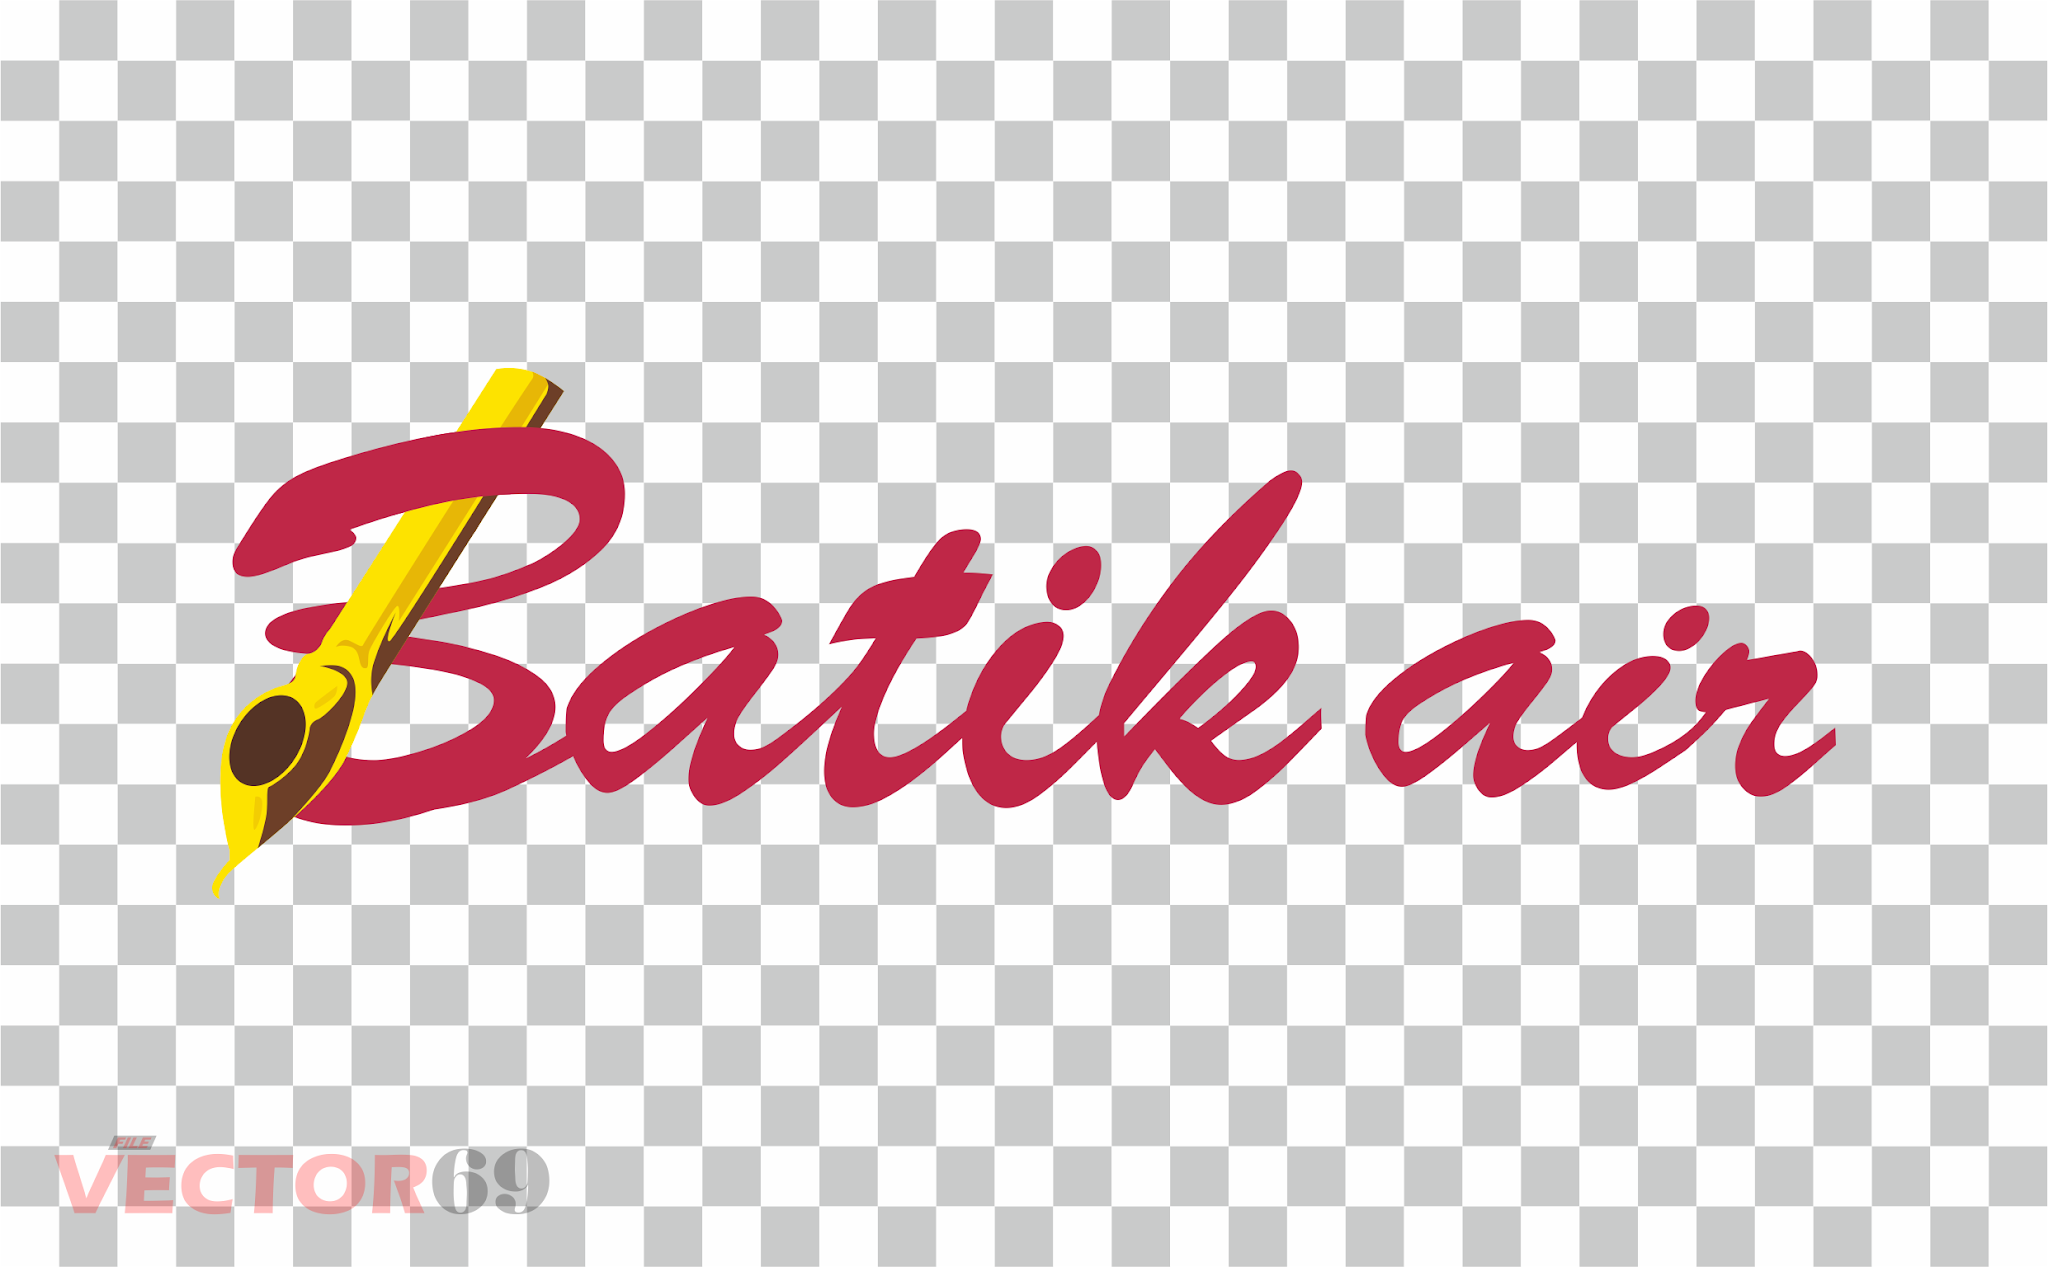 Batik Air Logo - Download Vector File PNG (Portable Network Graphics)